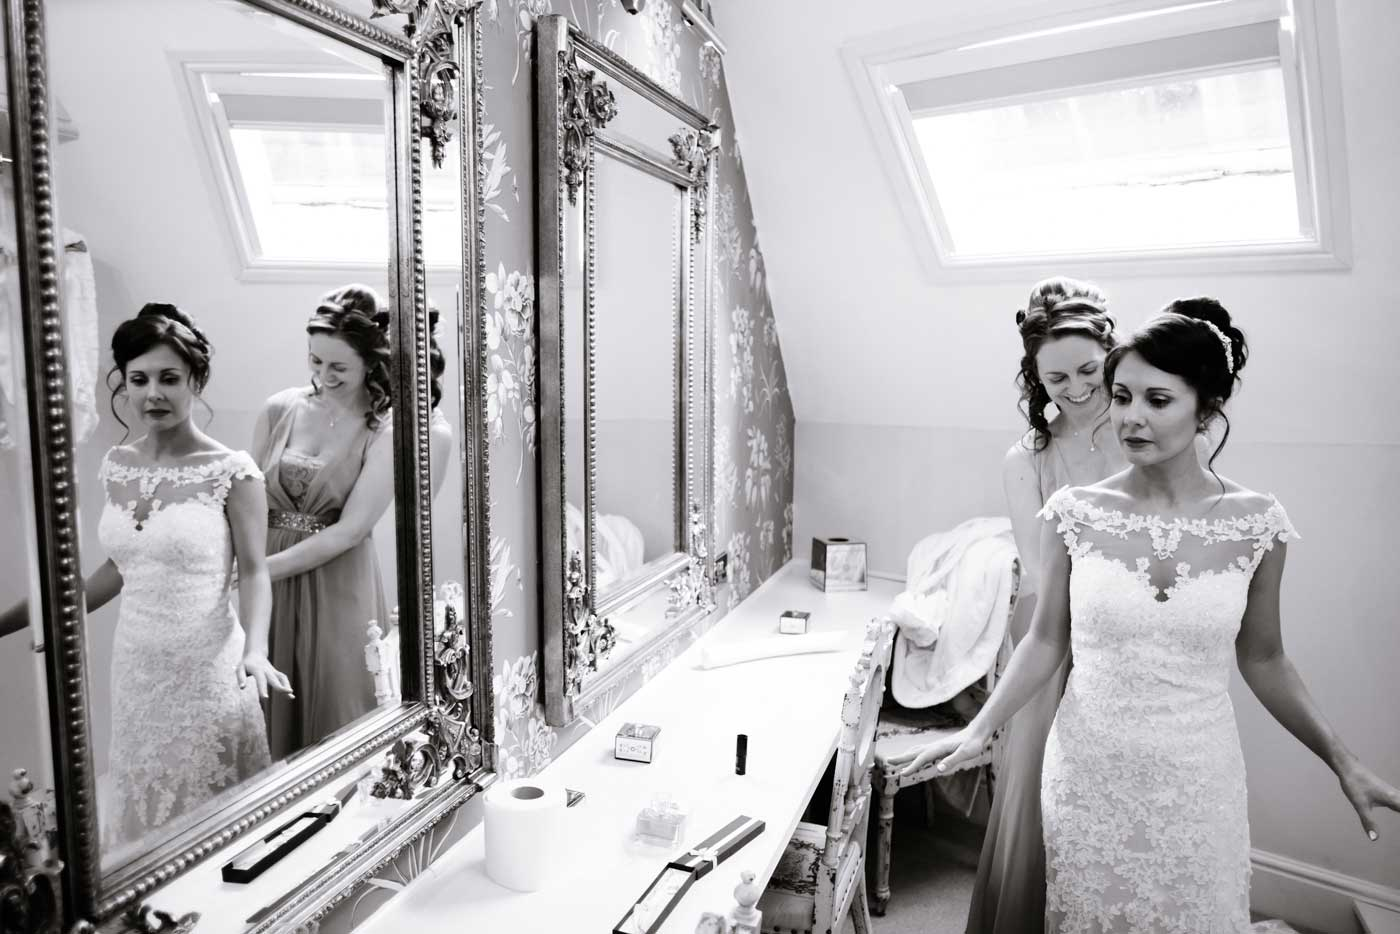 Bride having her dress tied up by maid